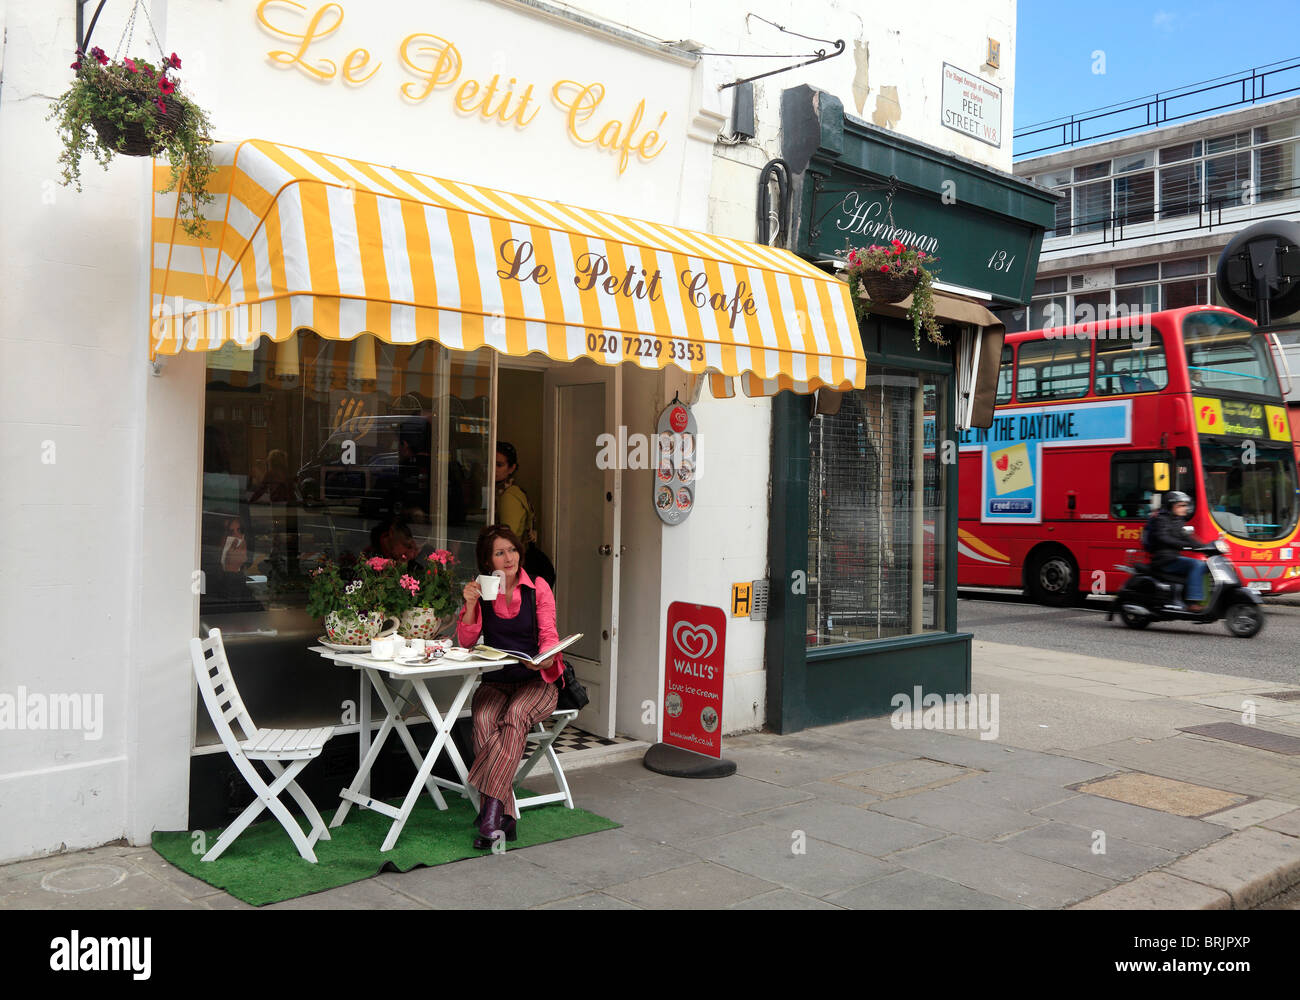 French Cafe in Notting Hill Gate Kensington London - Stock Image